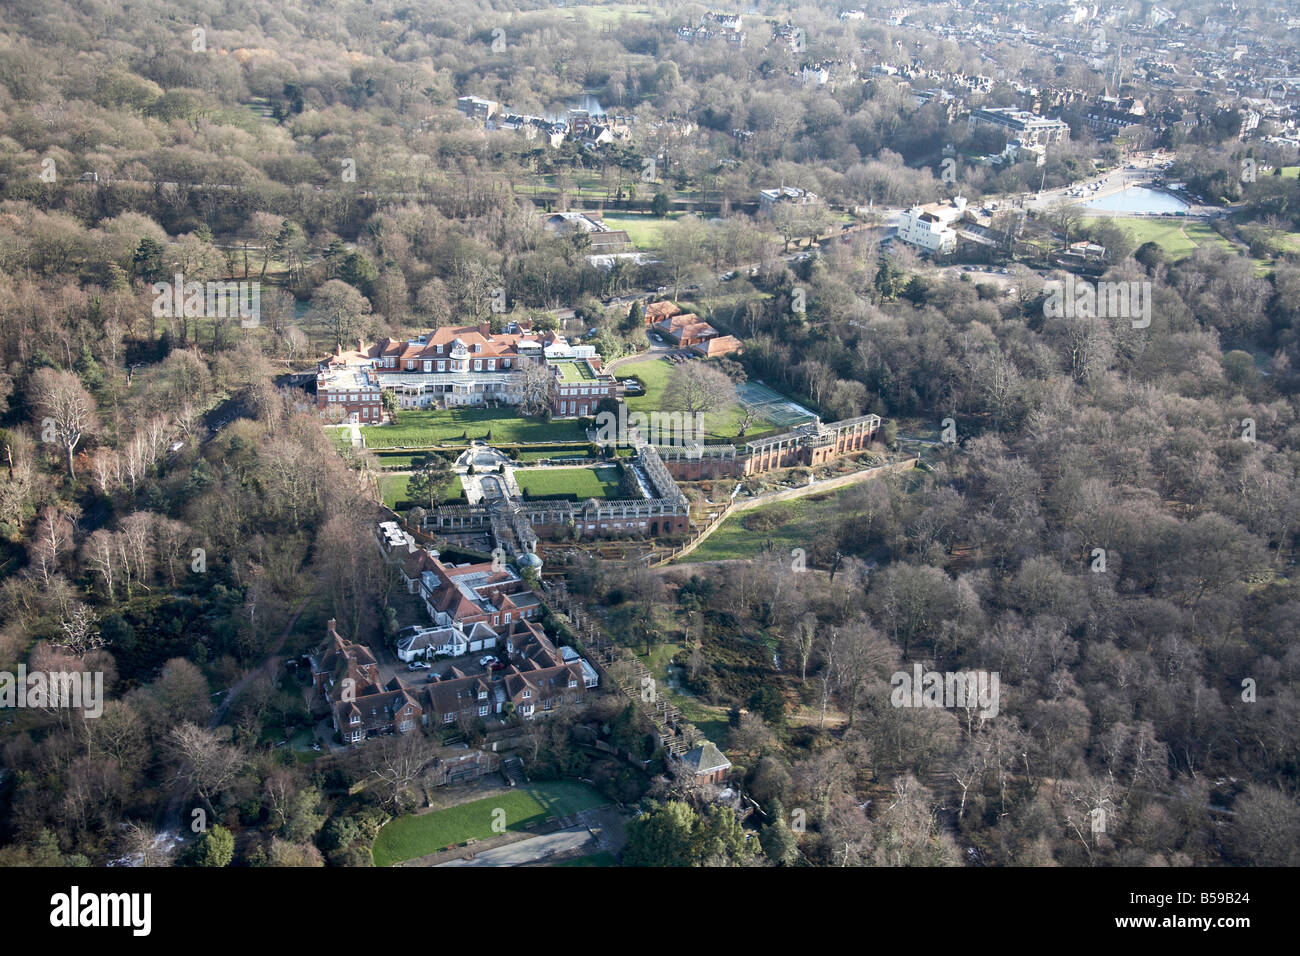 Aerial view south east of country mansion houses Inverforth Close North End Way Whitestone Pond West Heath Hampstead - Stock Image